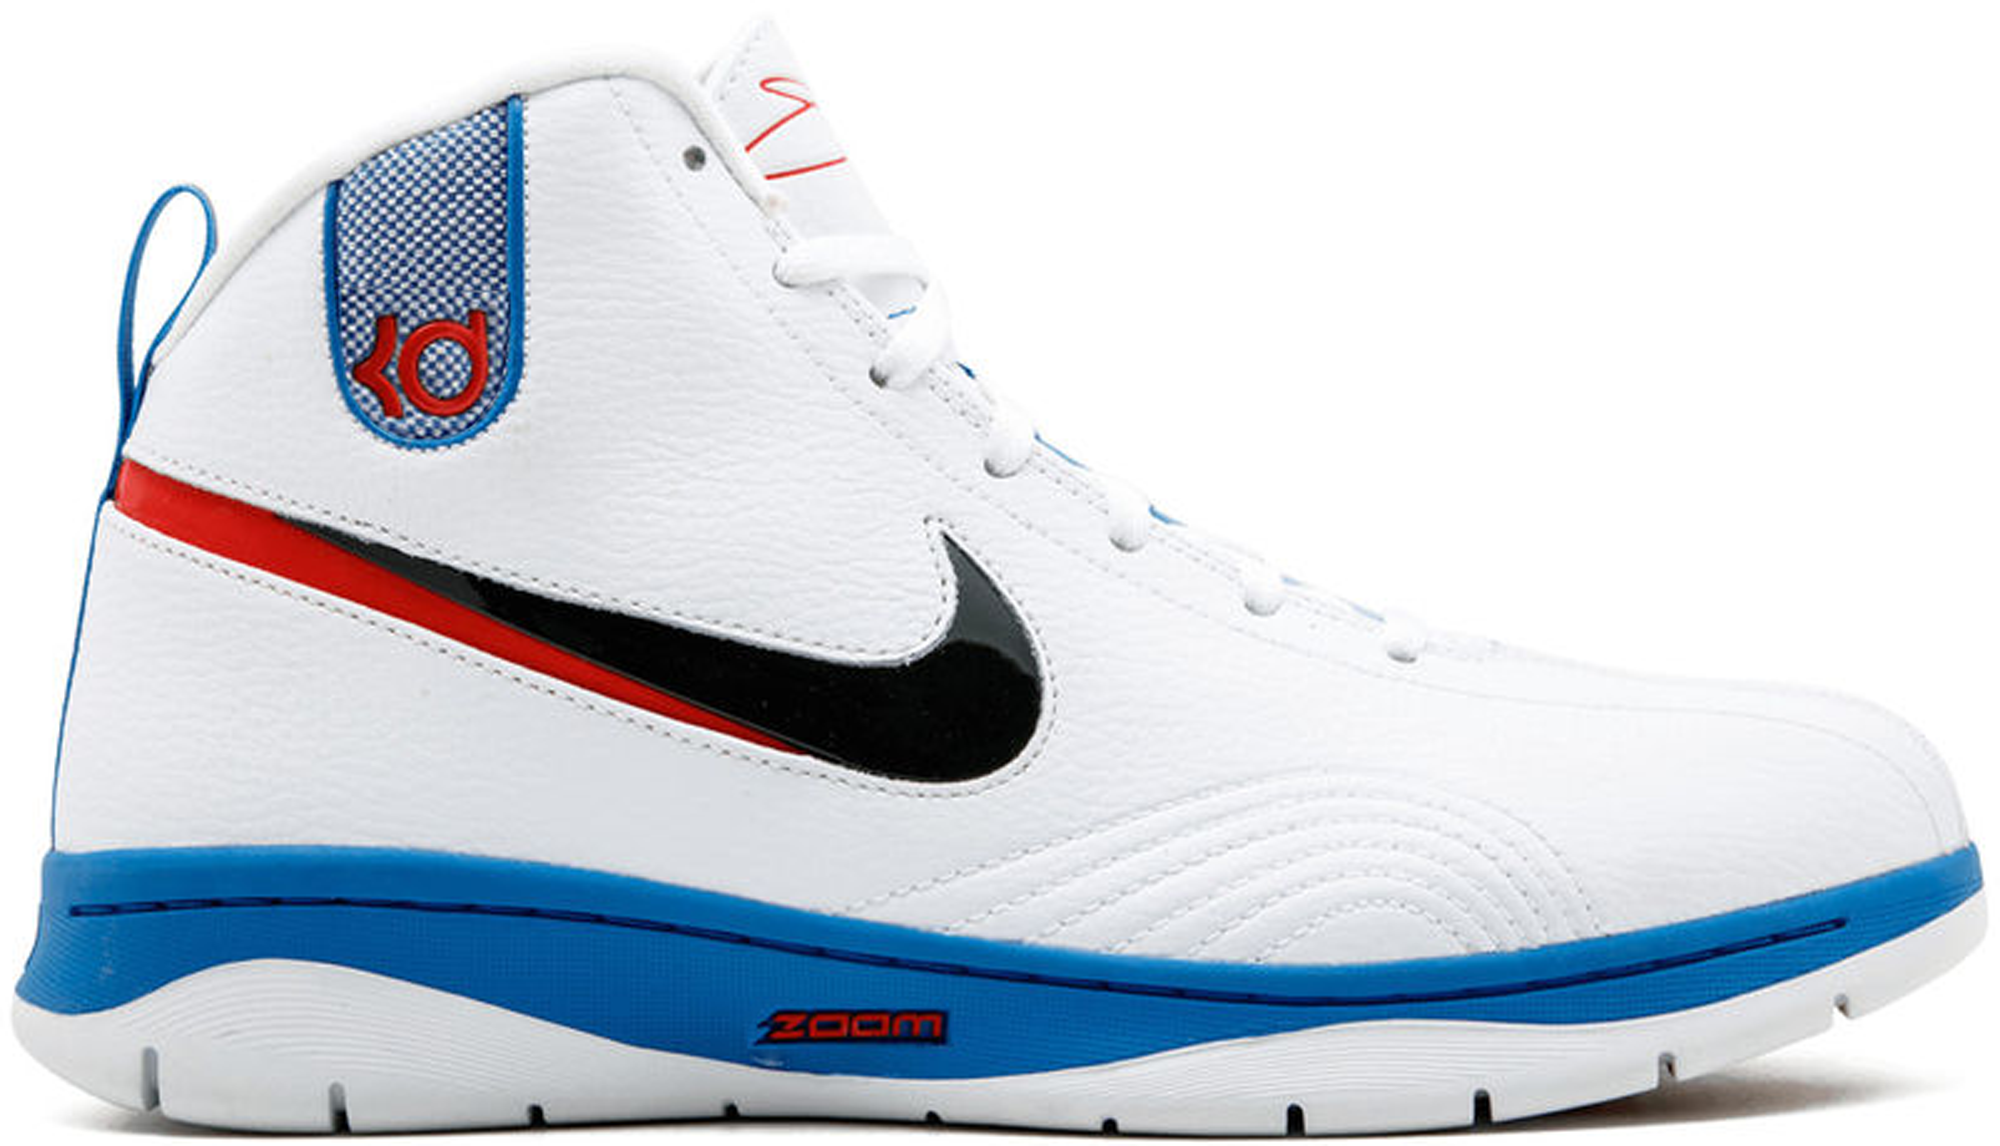 kd 1 white and red